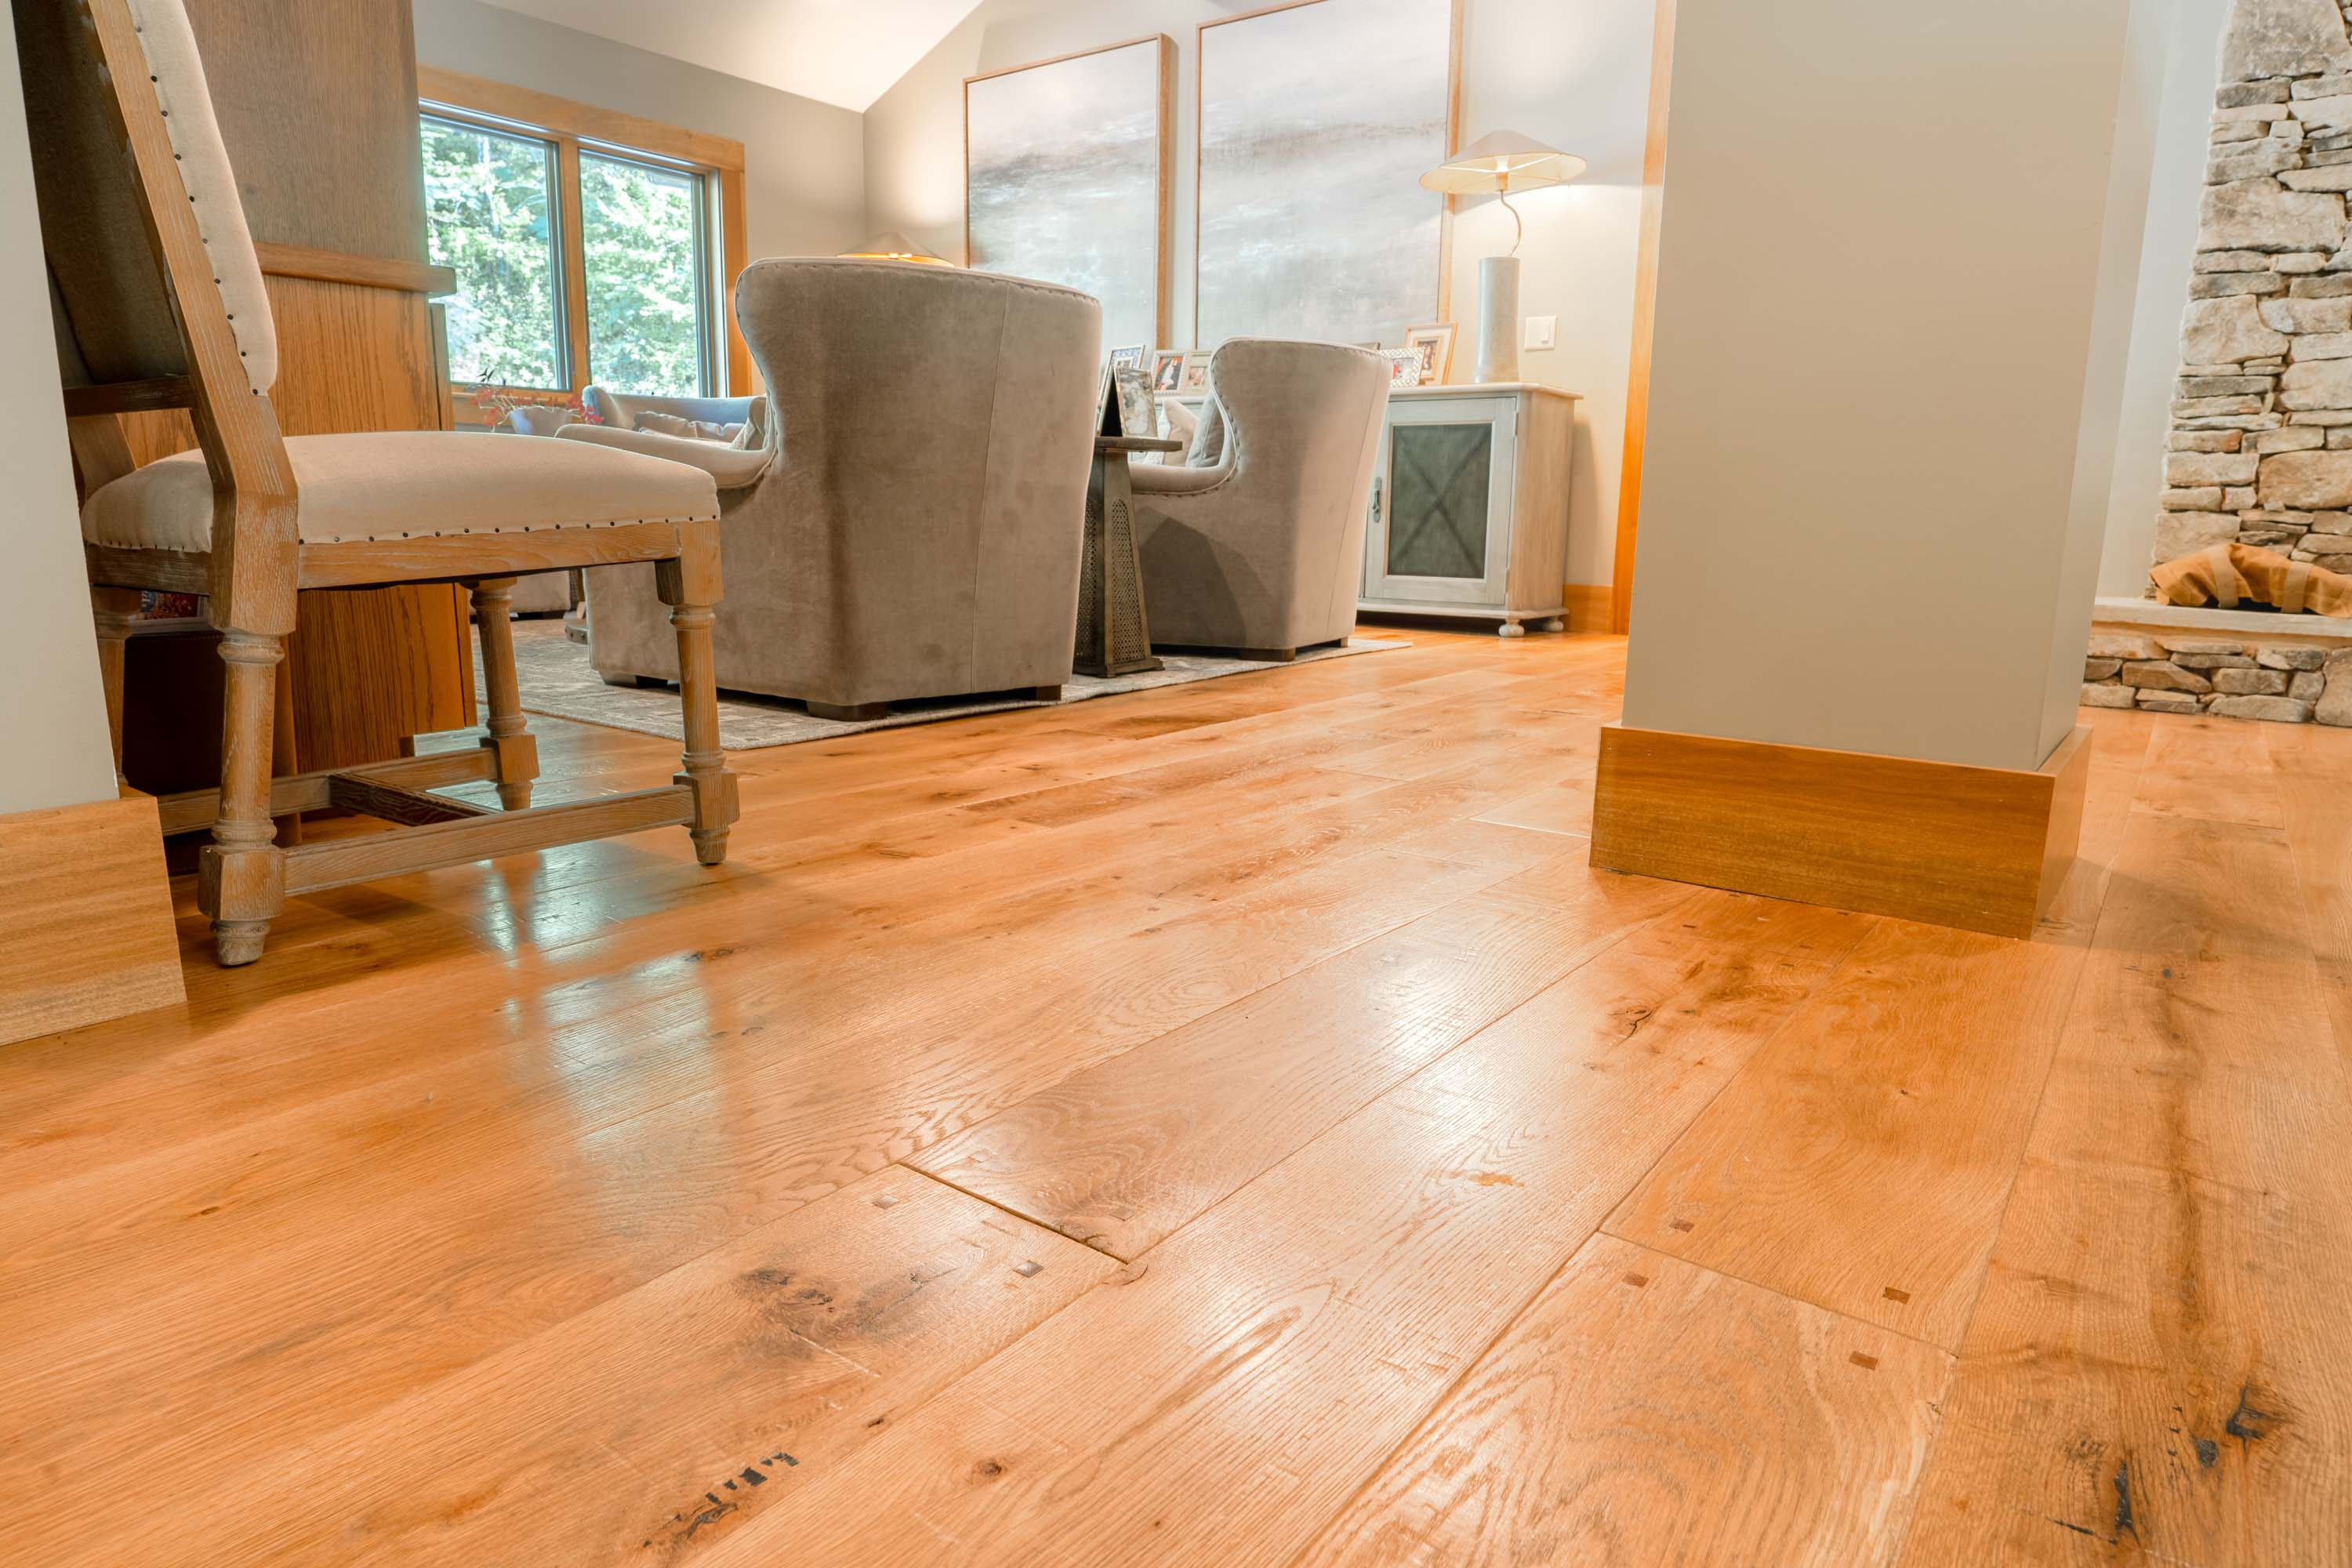 a living room with Montana Plank Reclaimed Wood Flooring by Tennessee Wood Flooring. Our Reclaimed Wood Floors are gathered and made in the hills of sevierville, tennessee.